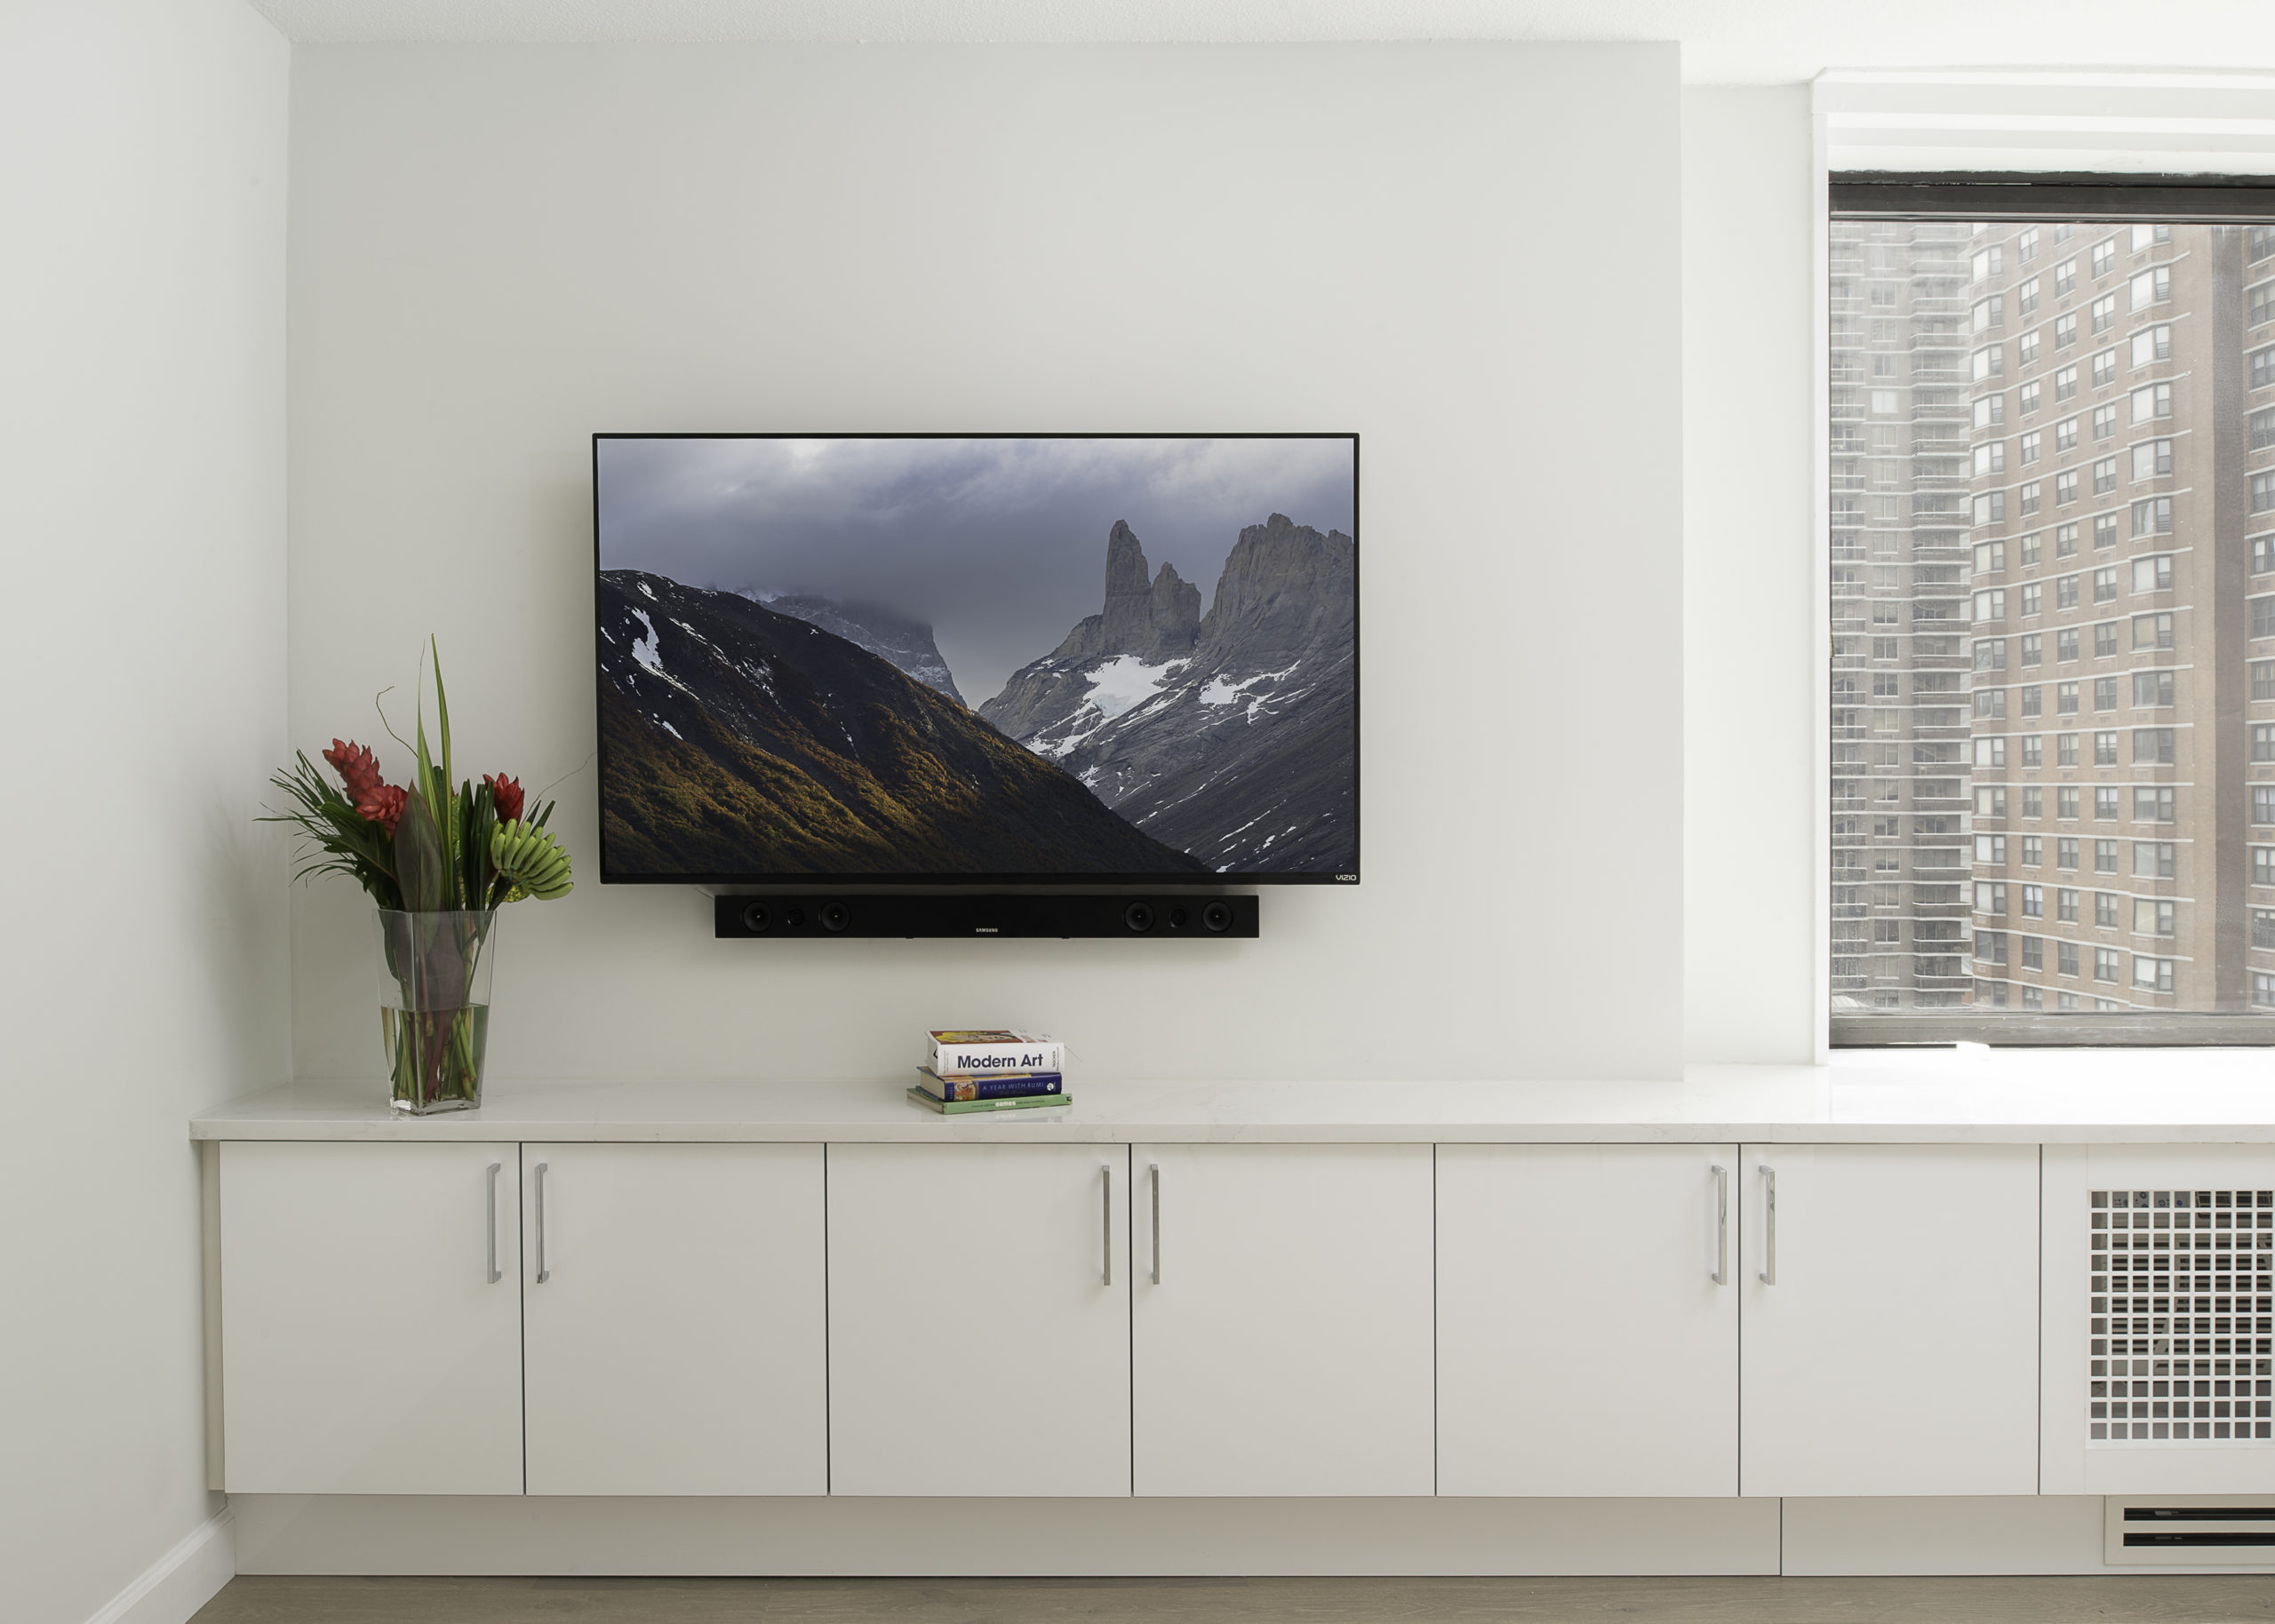 Entertainment space in apartment resign by EXD Architecture, NYC